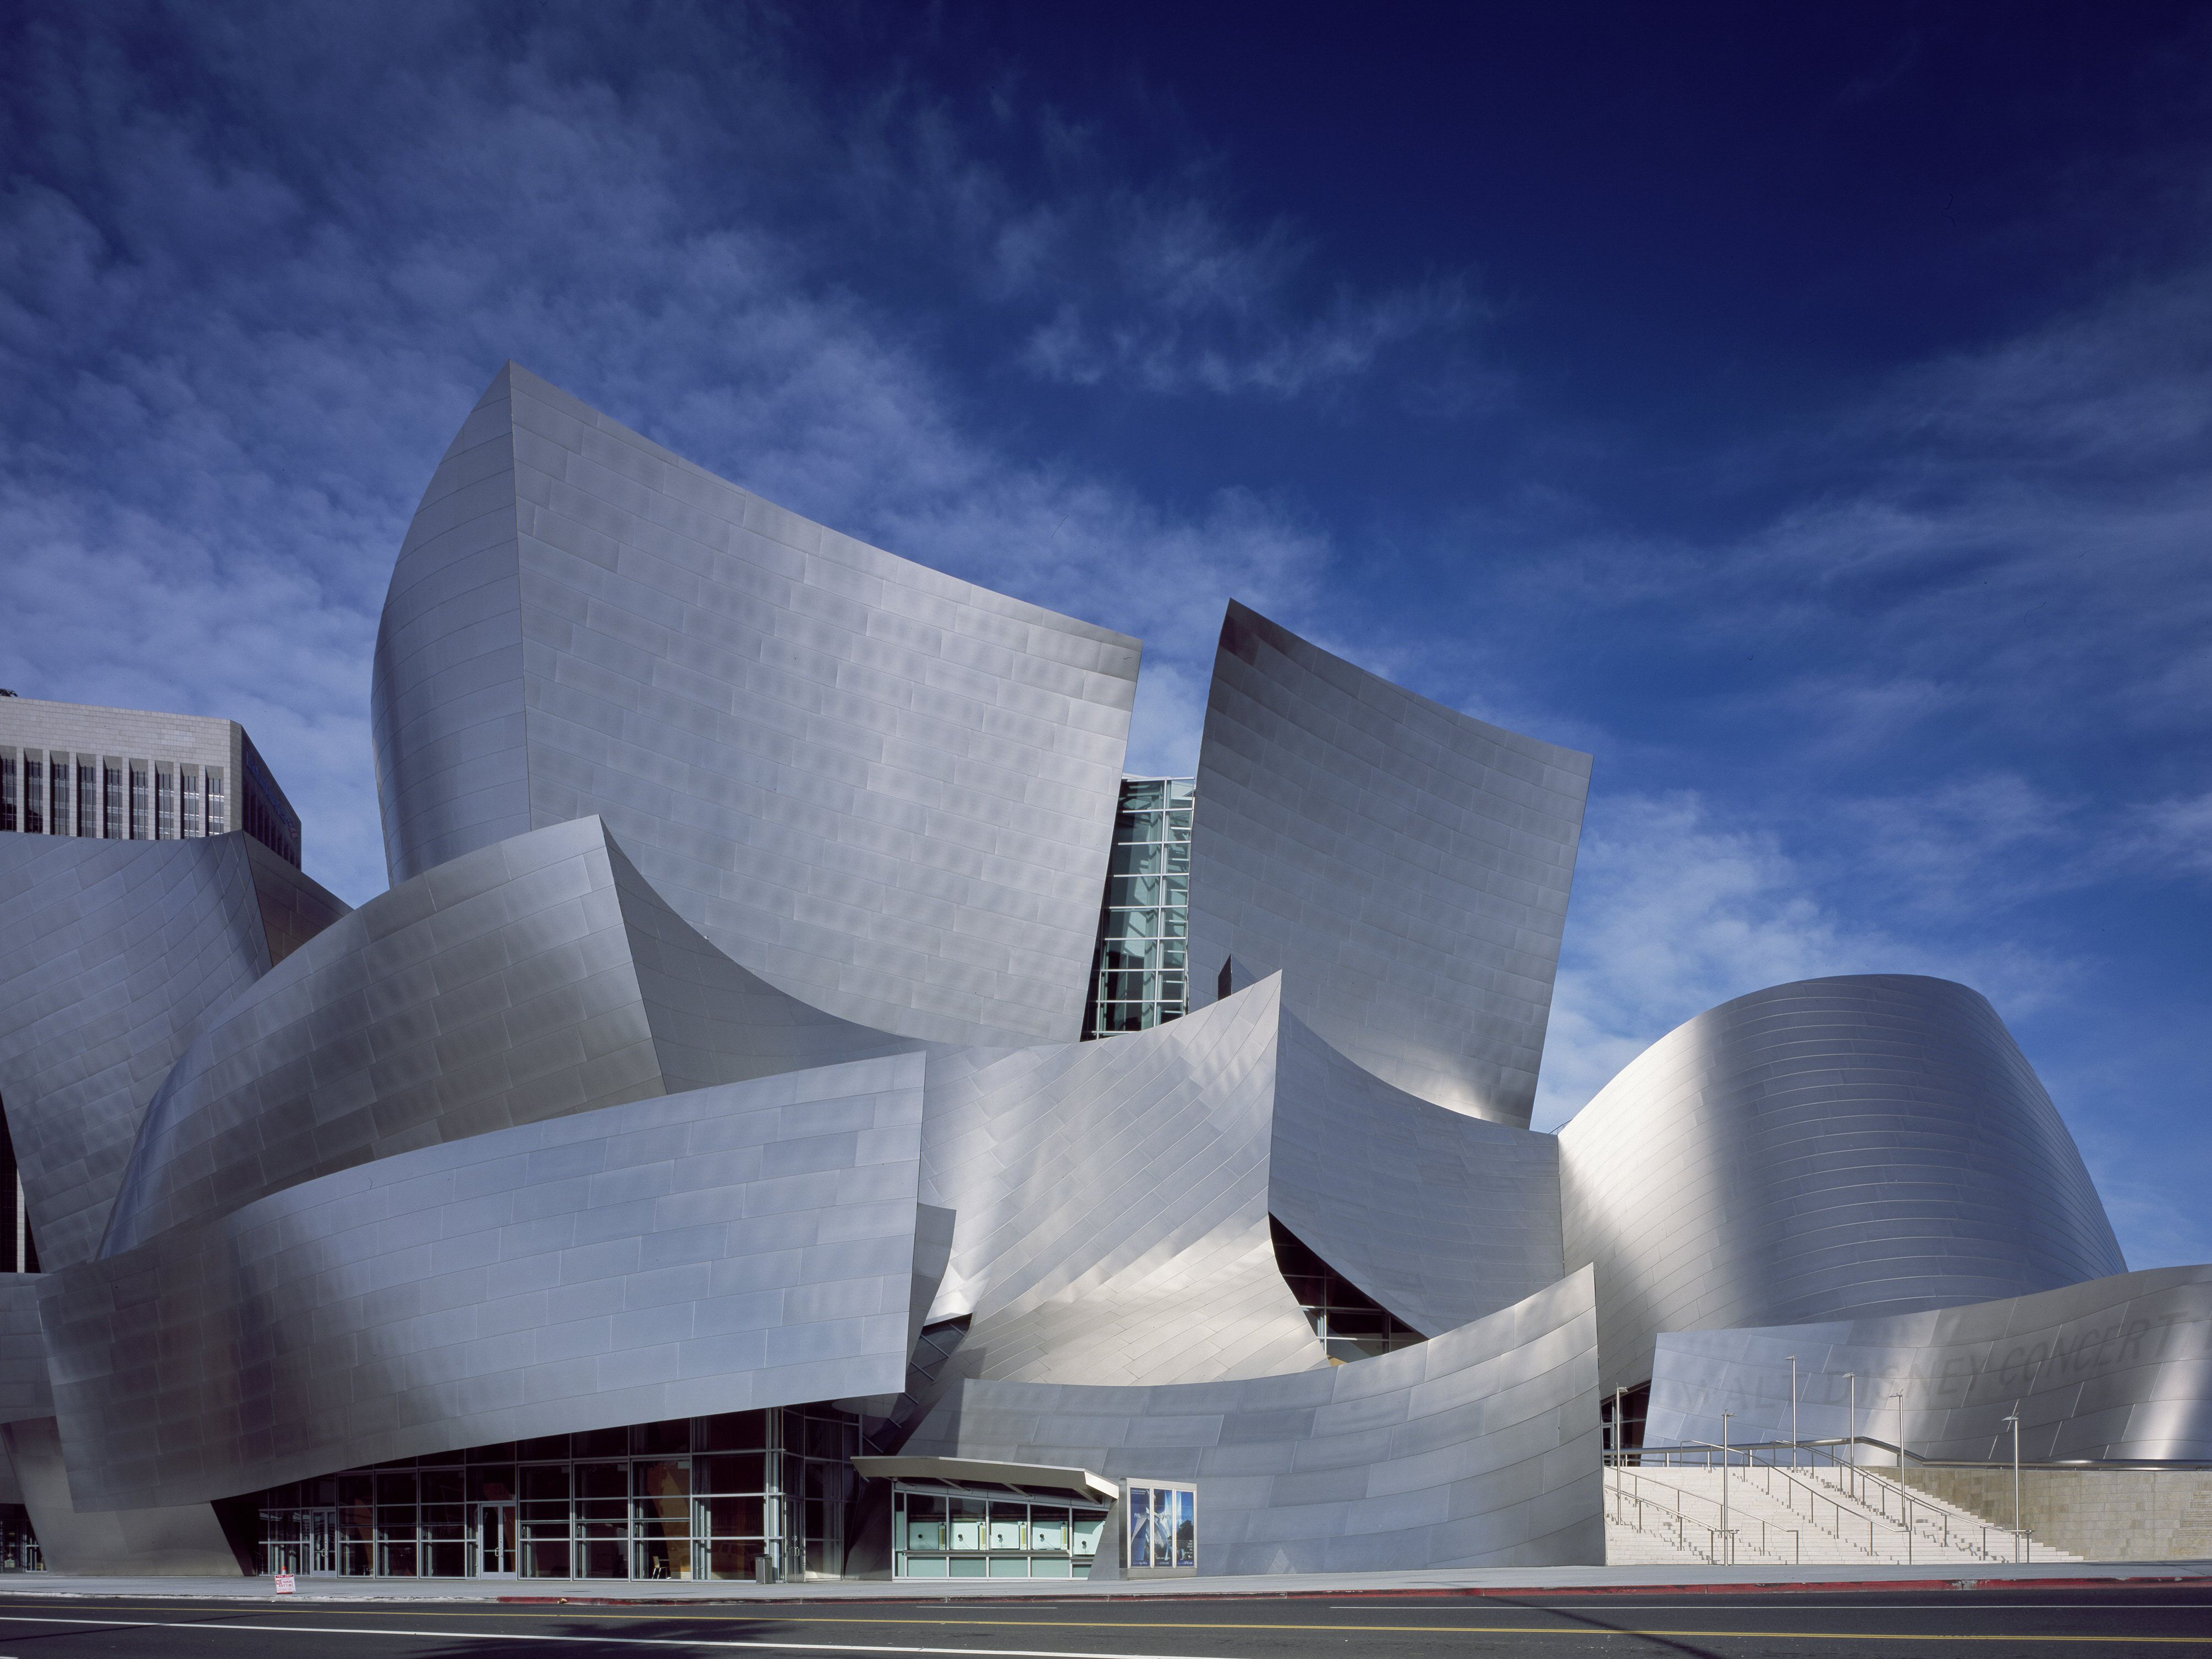 What Is The Hazard Of Metal Siding Like On Disney Hall